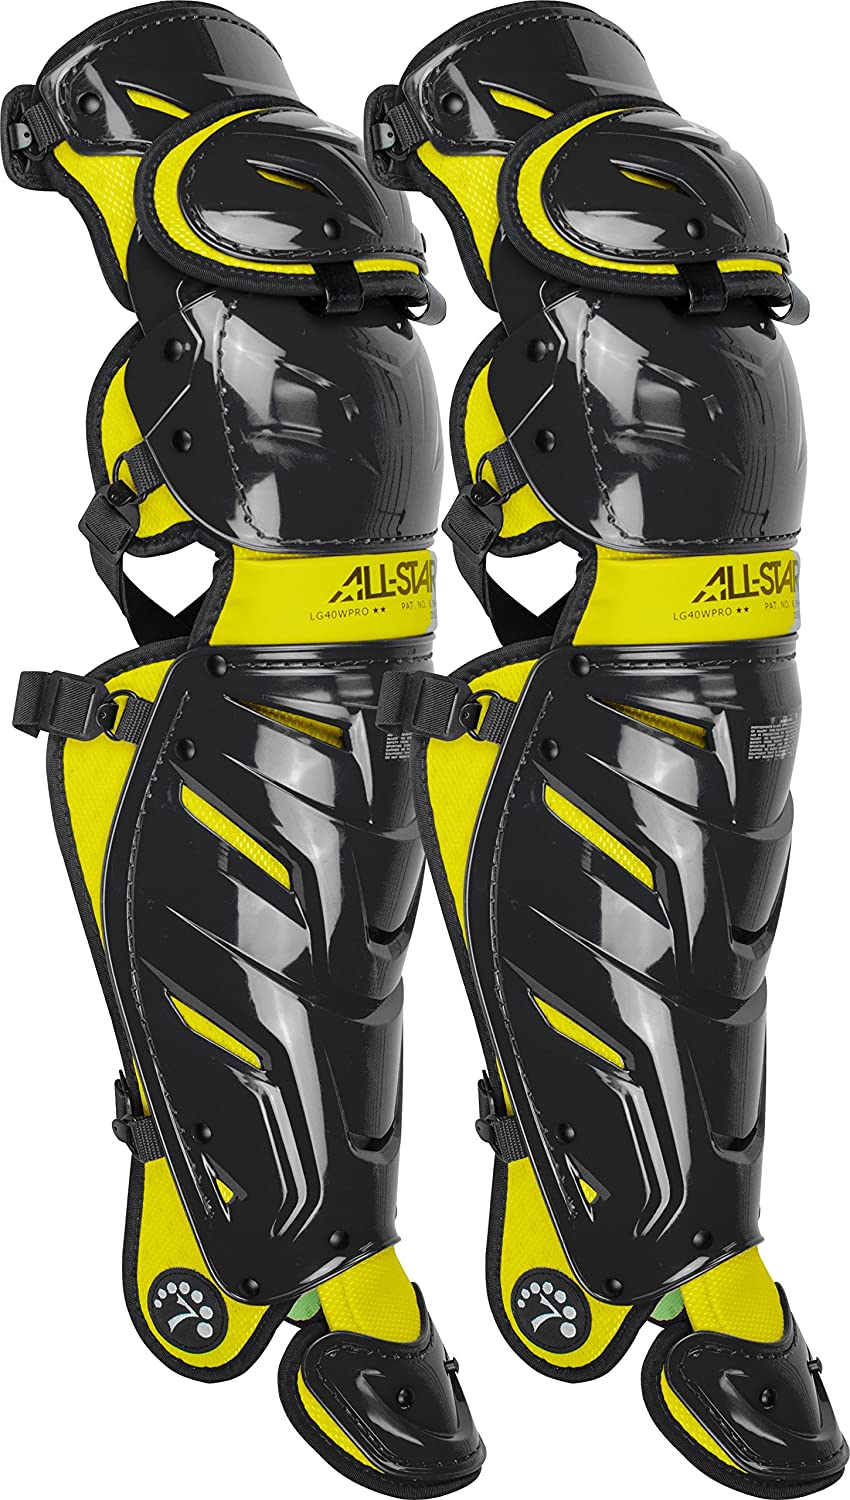 All-Star System 7 Axis Leg Guards